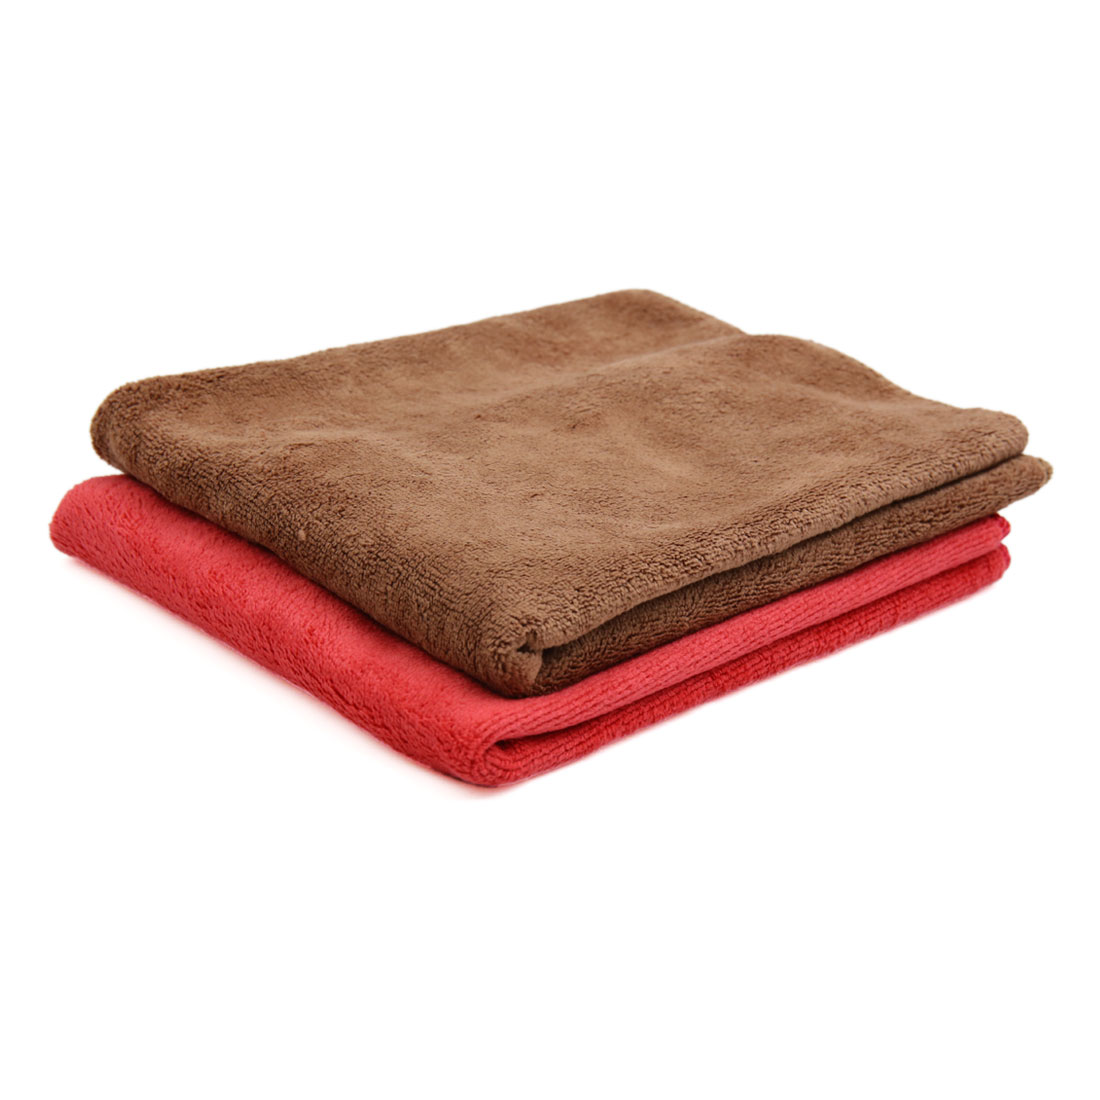 2pcs 40 x 40cm 400GSM Microfiber Car Clean Towels Drying Cloth Coffee Color Red